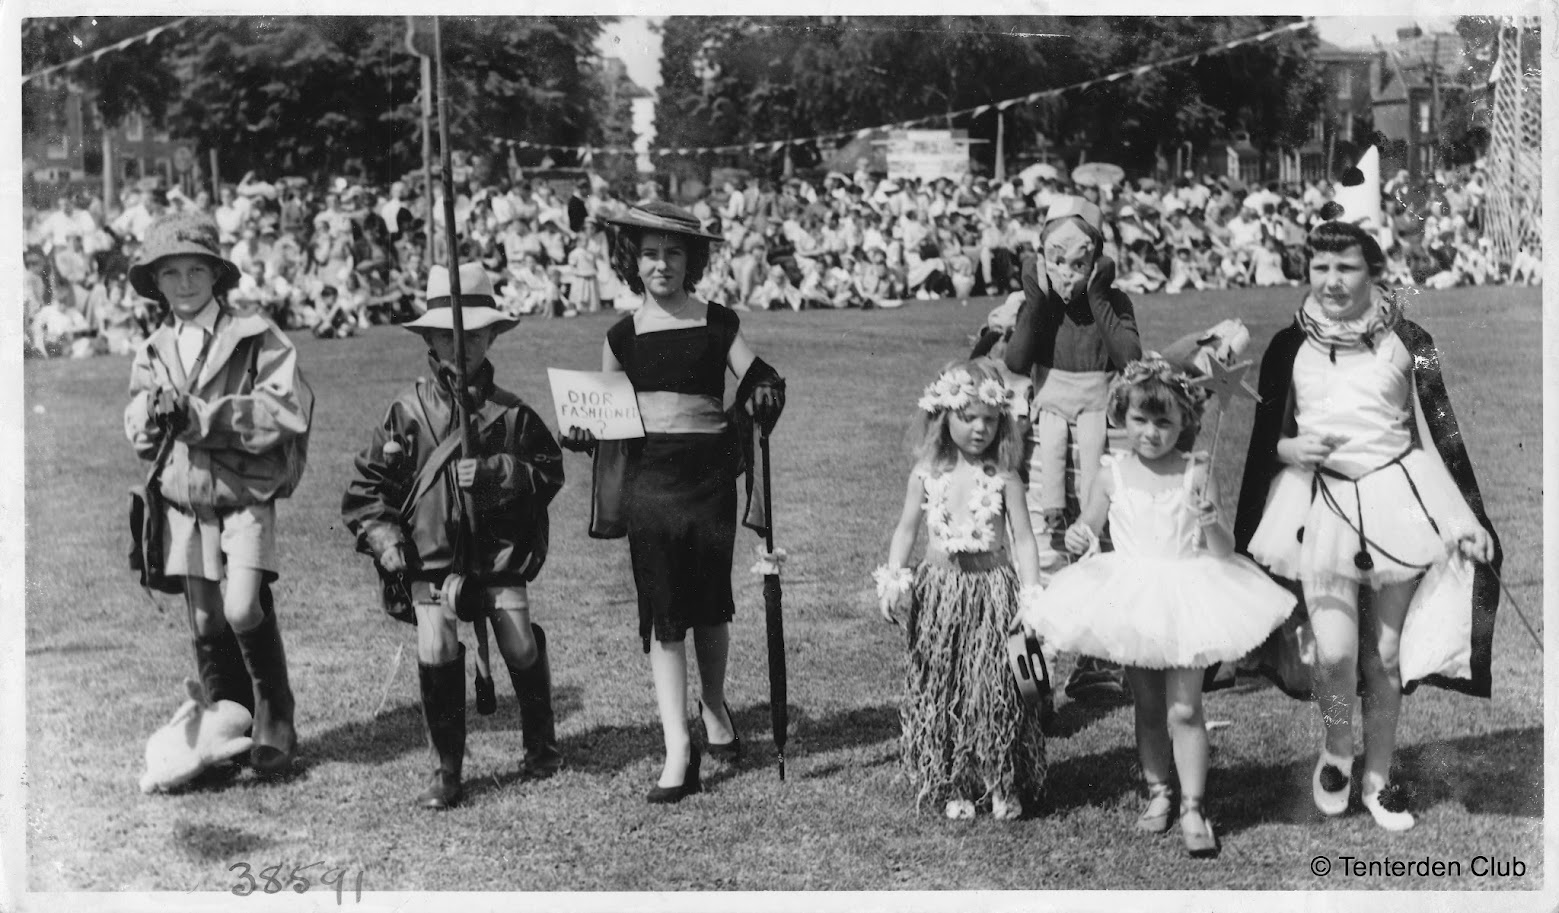 Tenterden Club Gala Day 1950s - Archive Photos